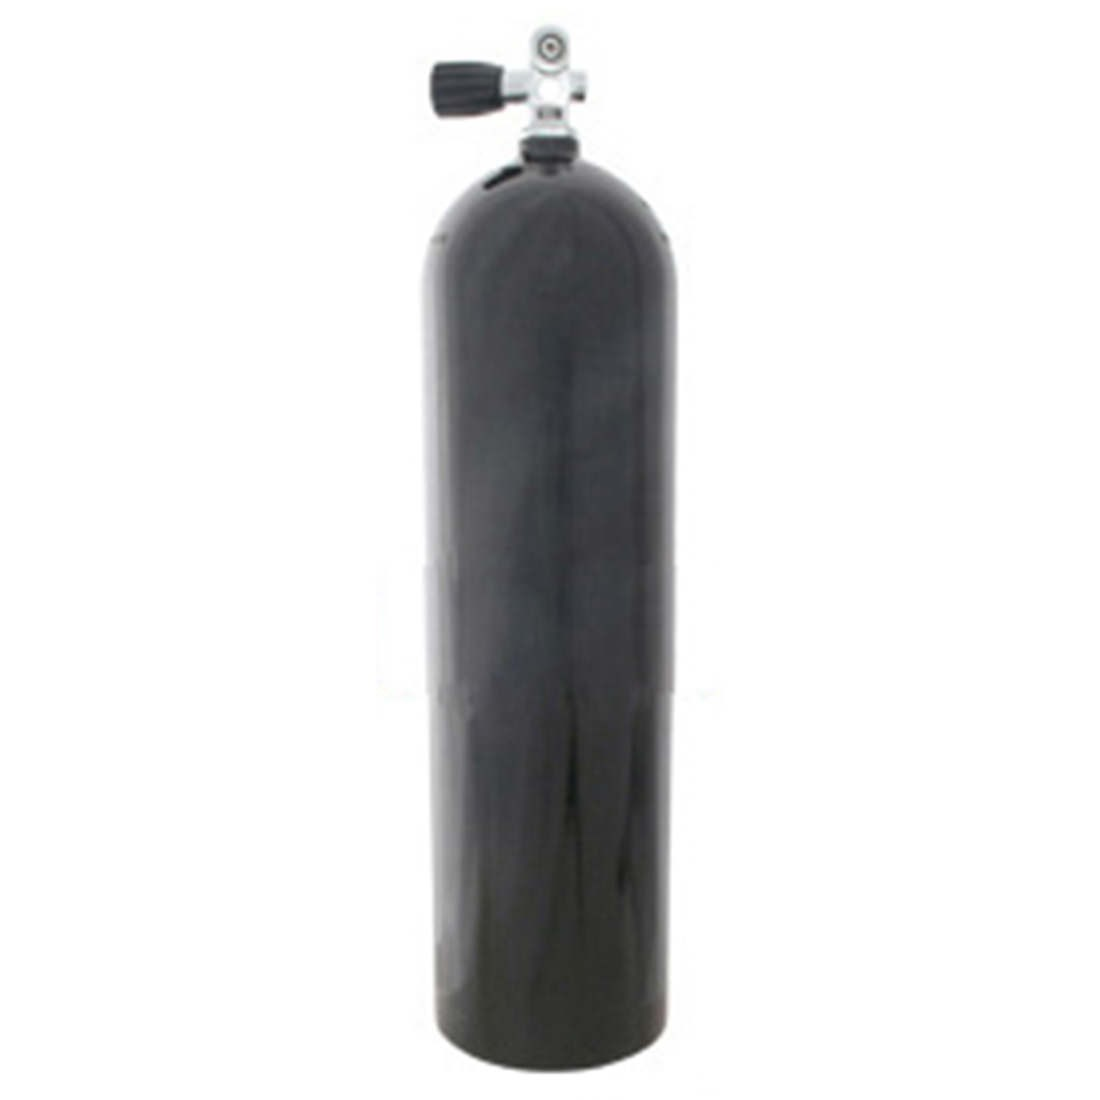 AL80 Aluminum SCUBA Cylinder with Pro Valve - Black